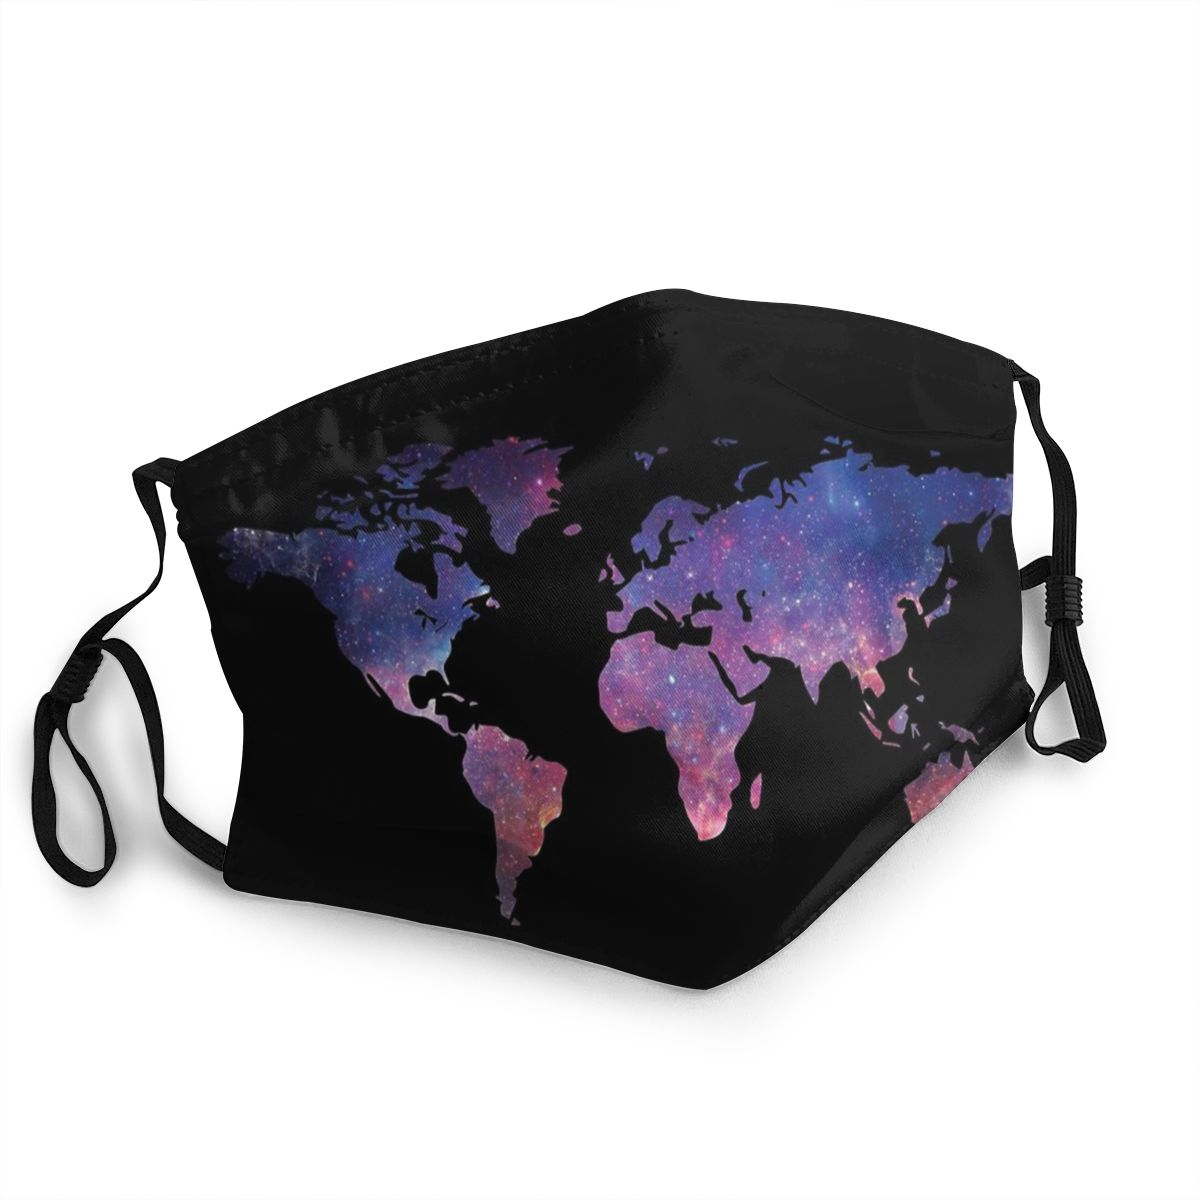 World Map Unisex Non-Disposable Face Mask Anti Bacterial Dustproof Protection Cover Respirator